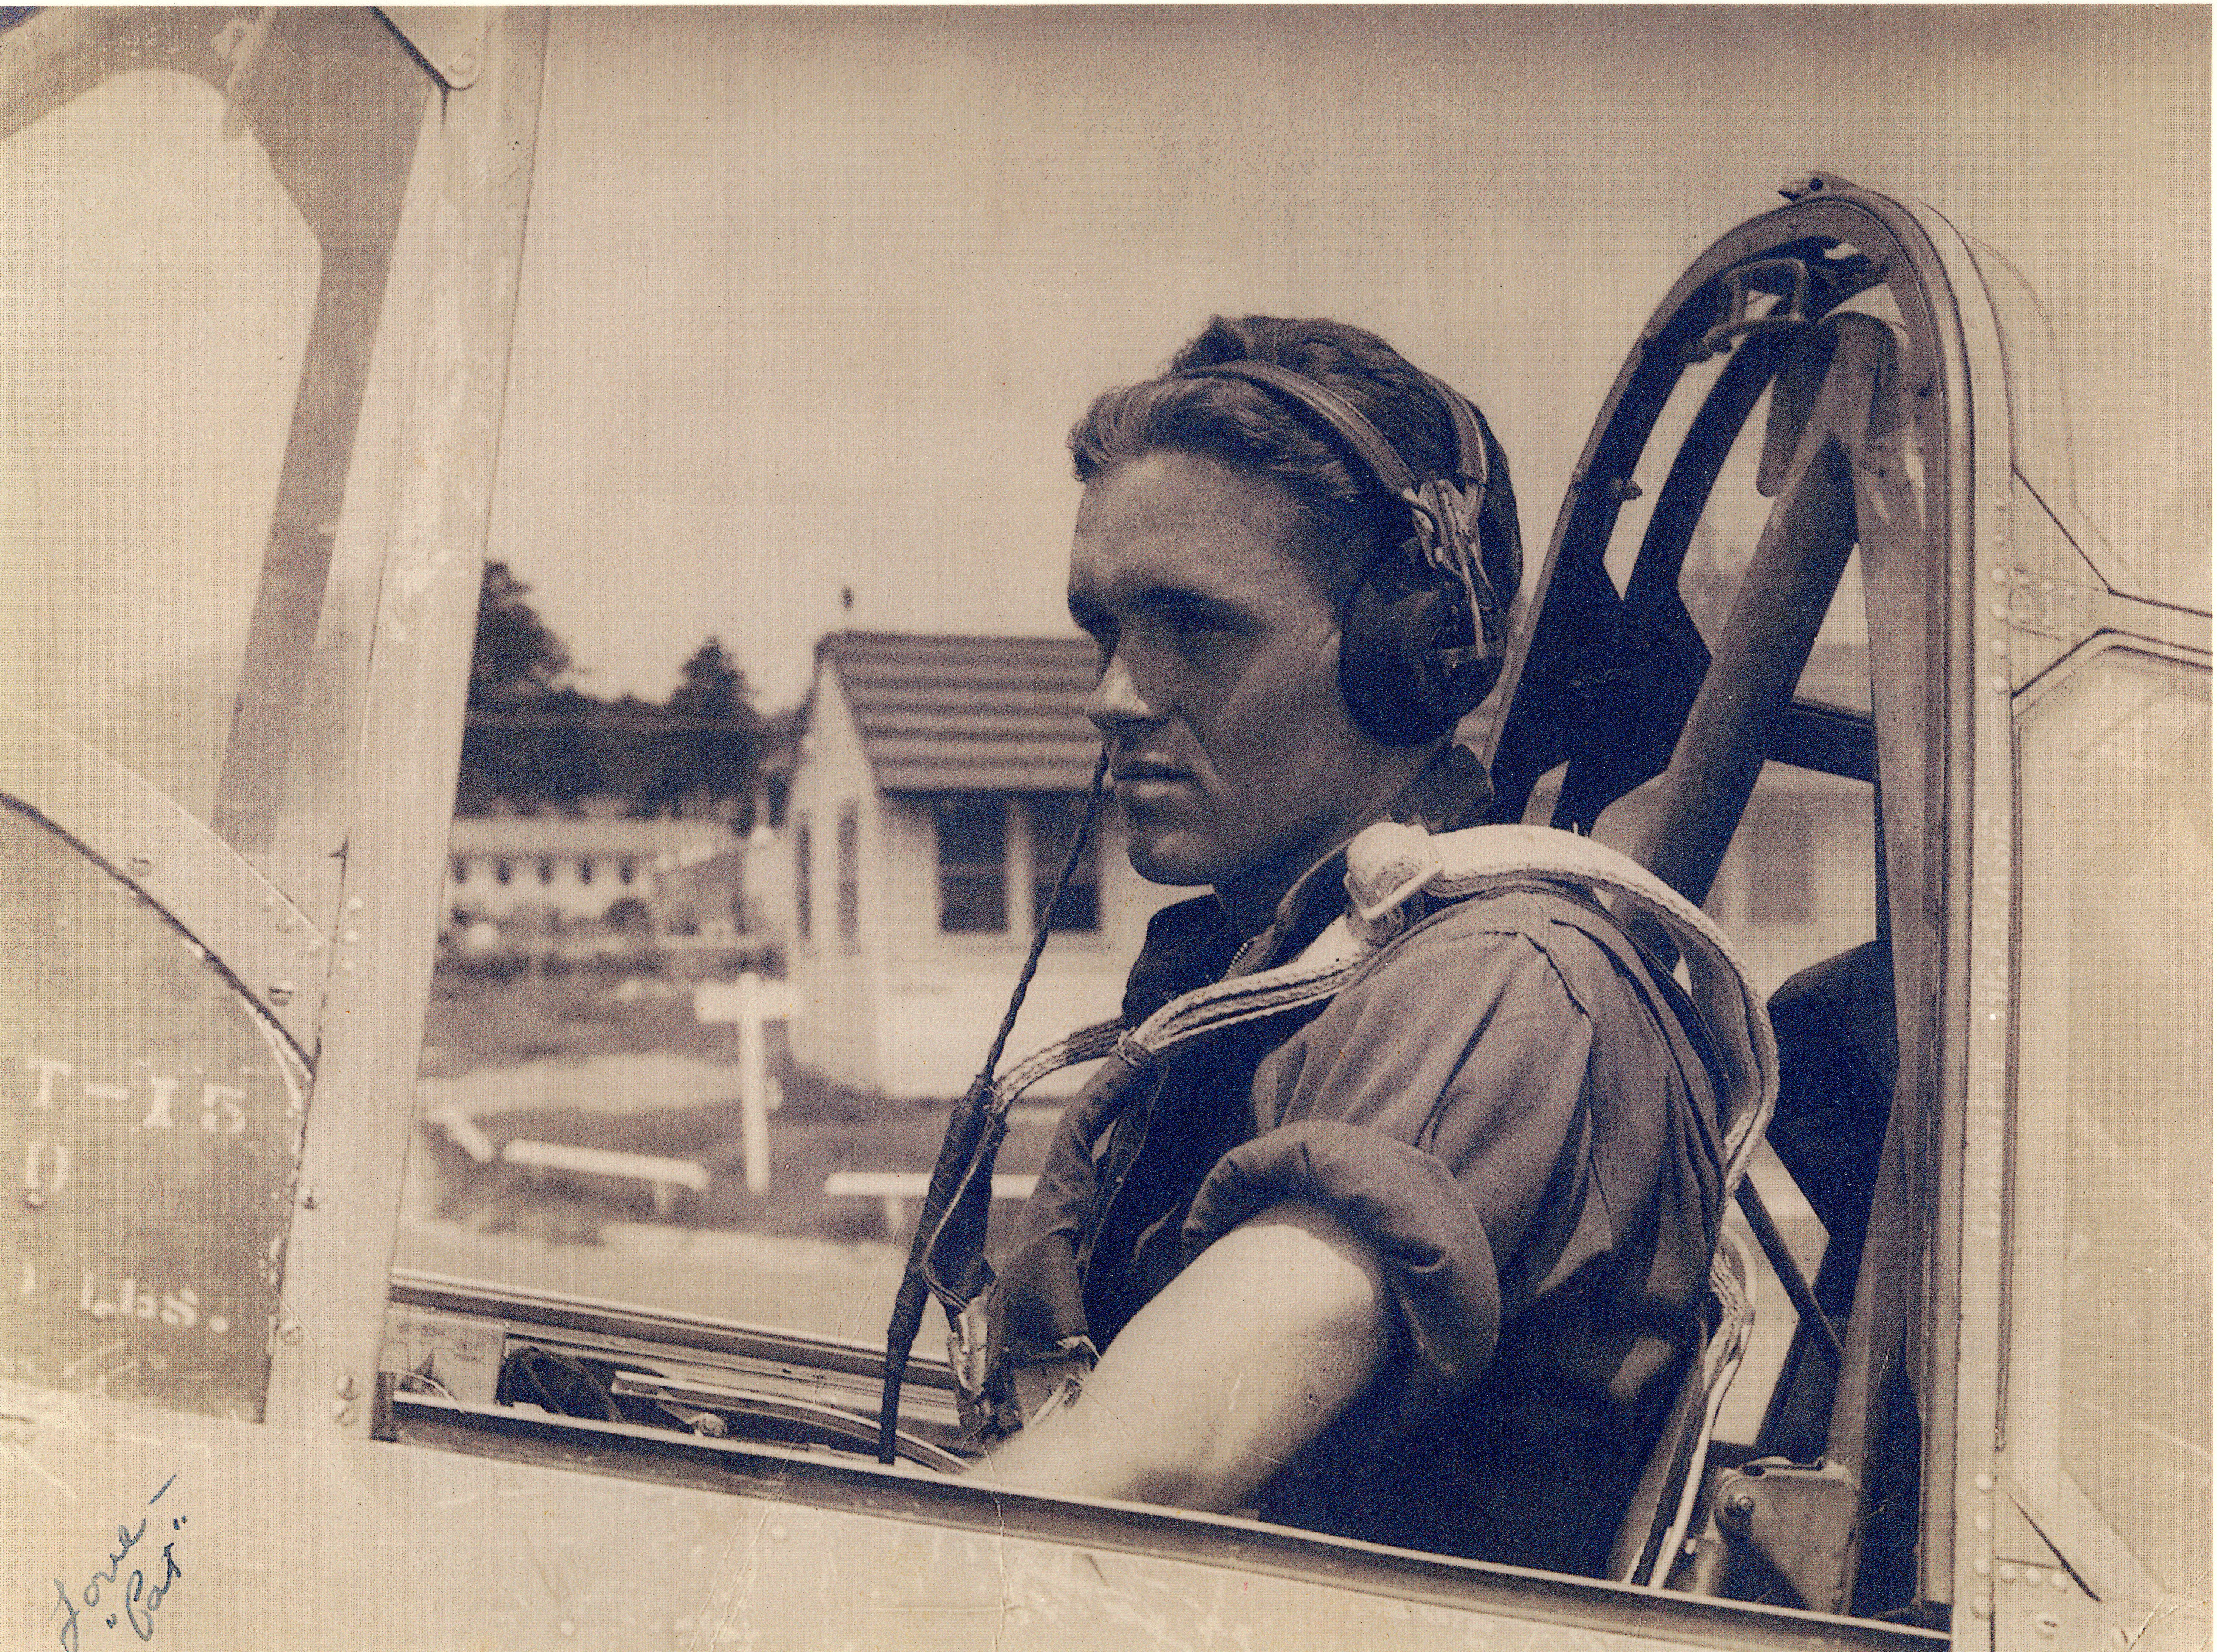 02-1 Wally Paton in plane